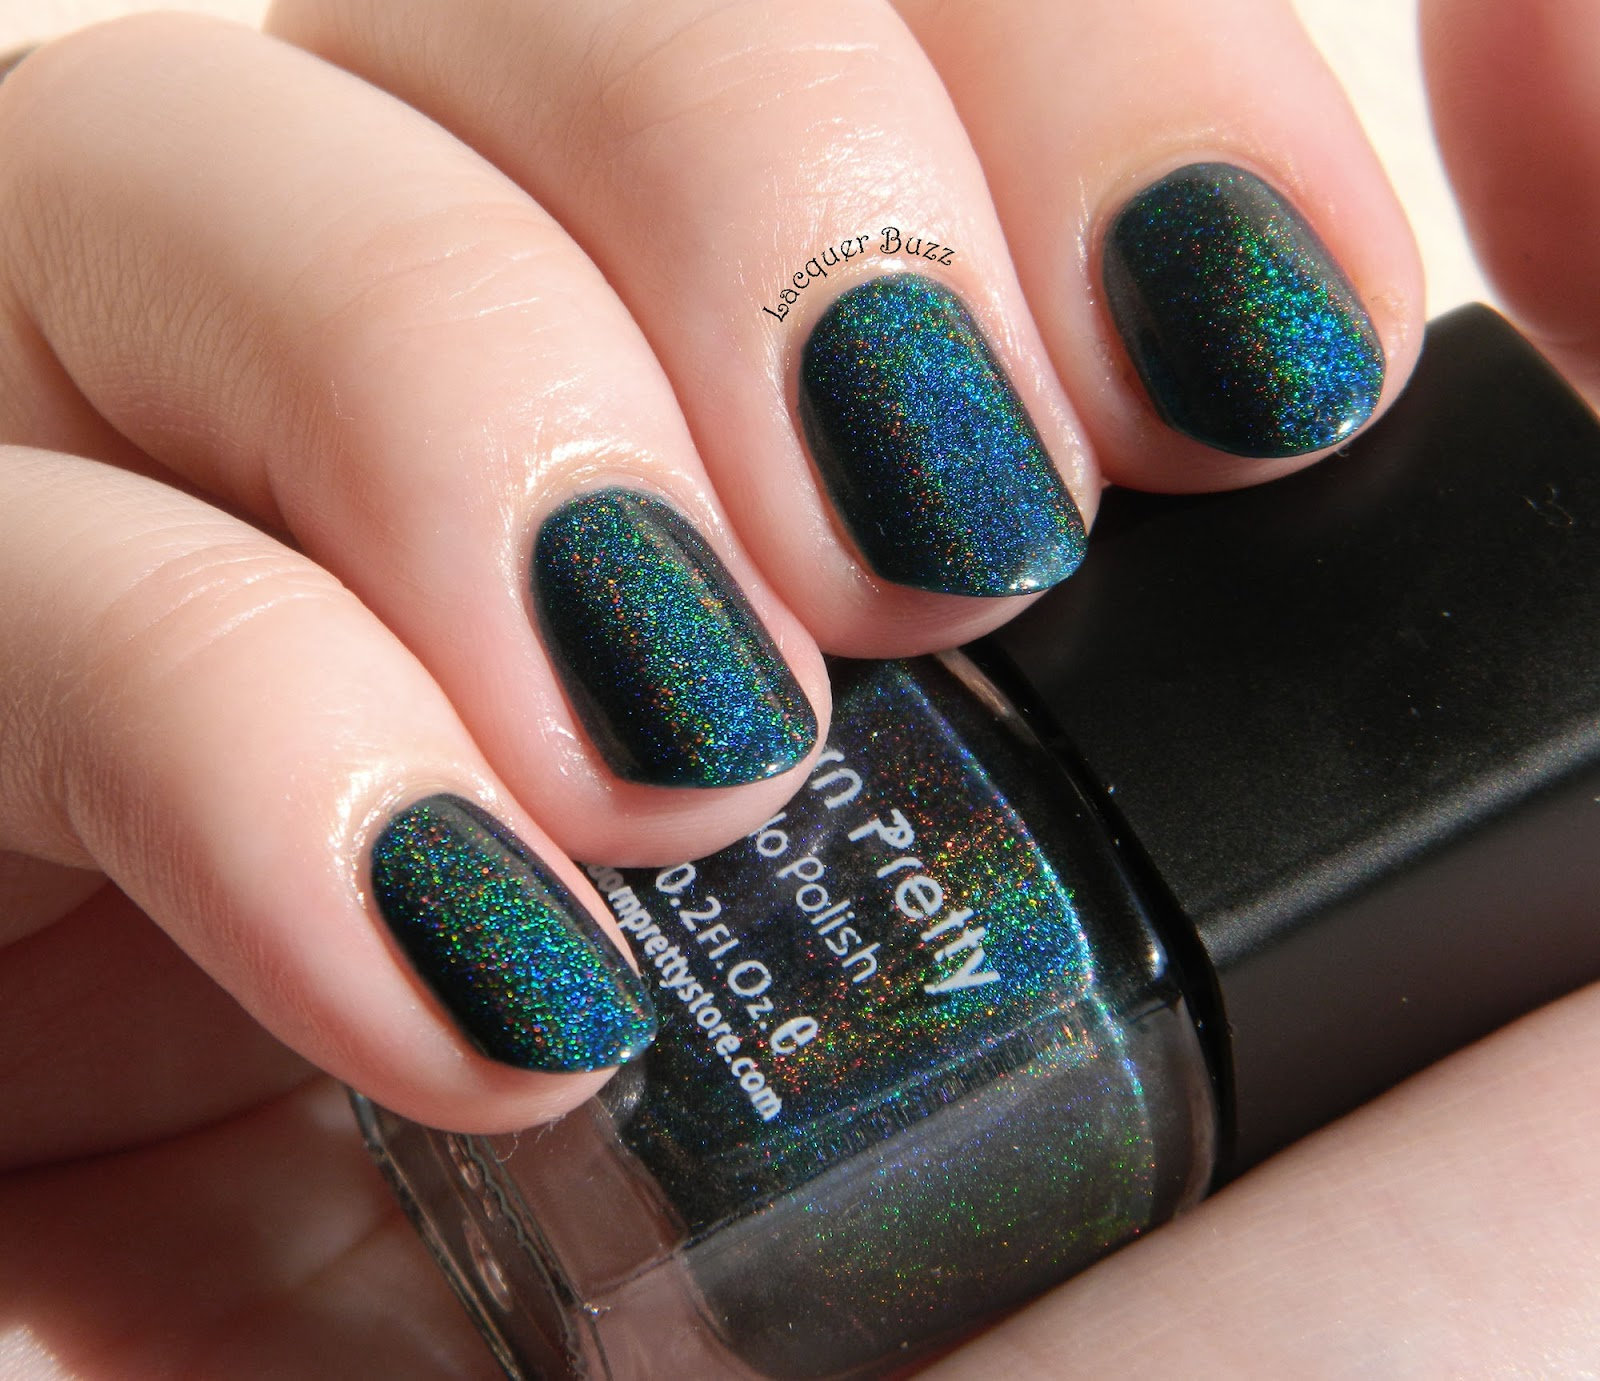 Lacquer Buzz Born Pretty Store Holographic Nail Polish Review